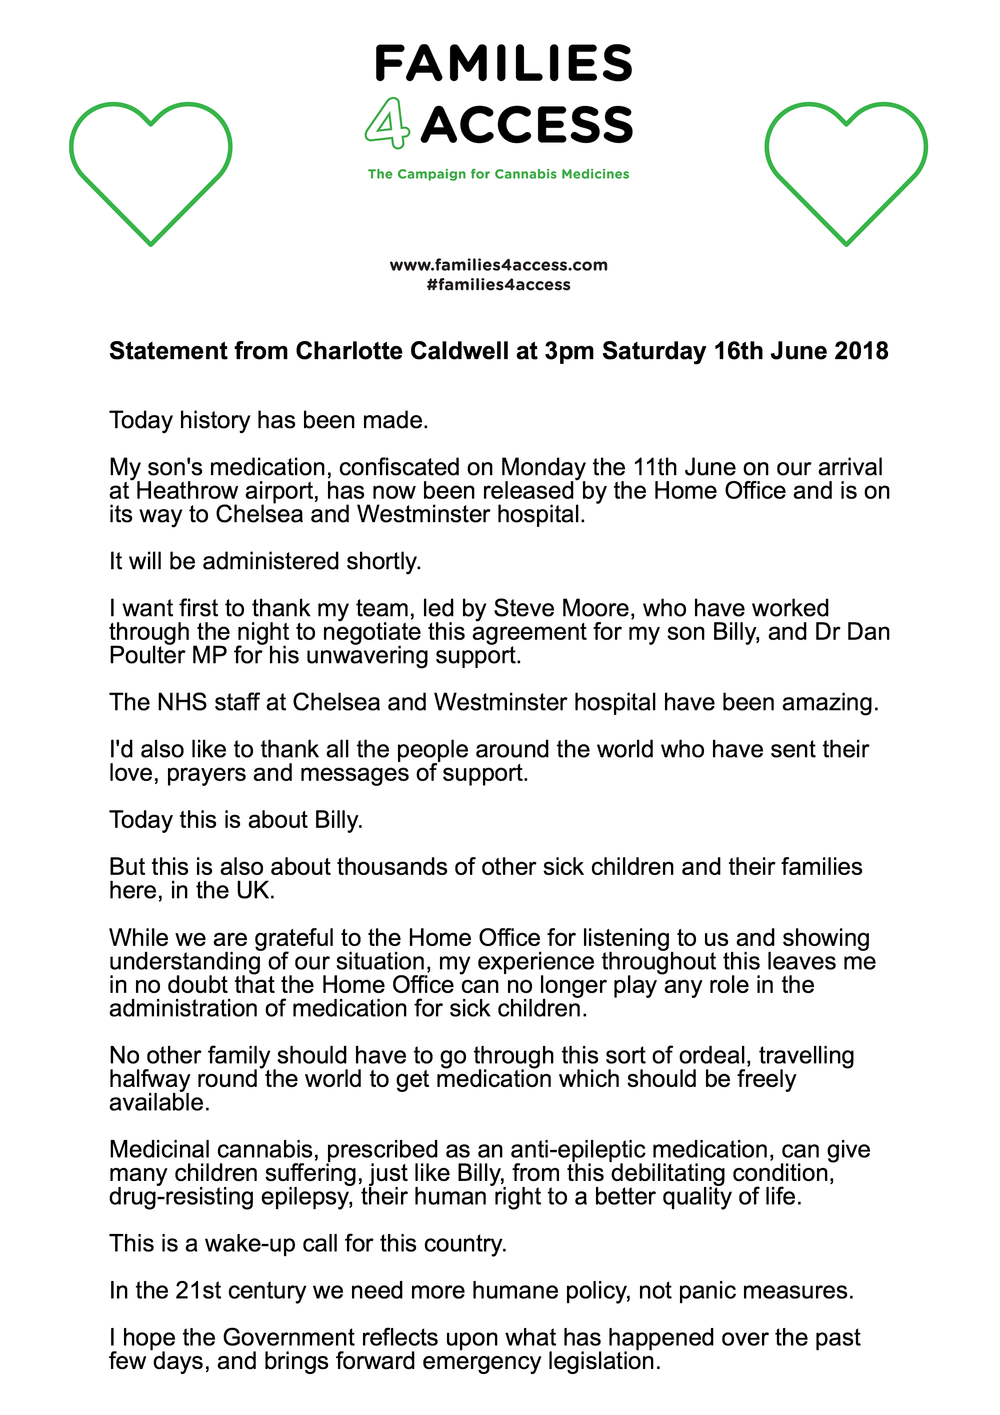 Charlotte-Caldwell-Families-4-Access-Statement-16th-June-2018.png